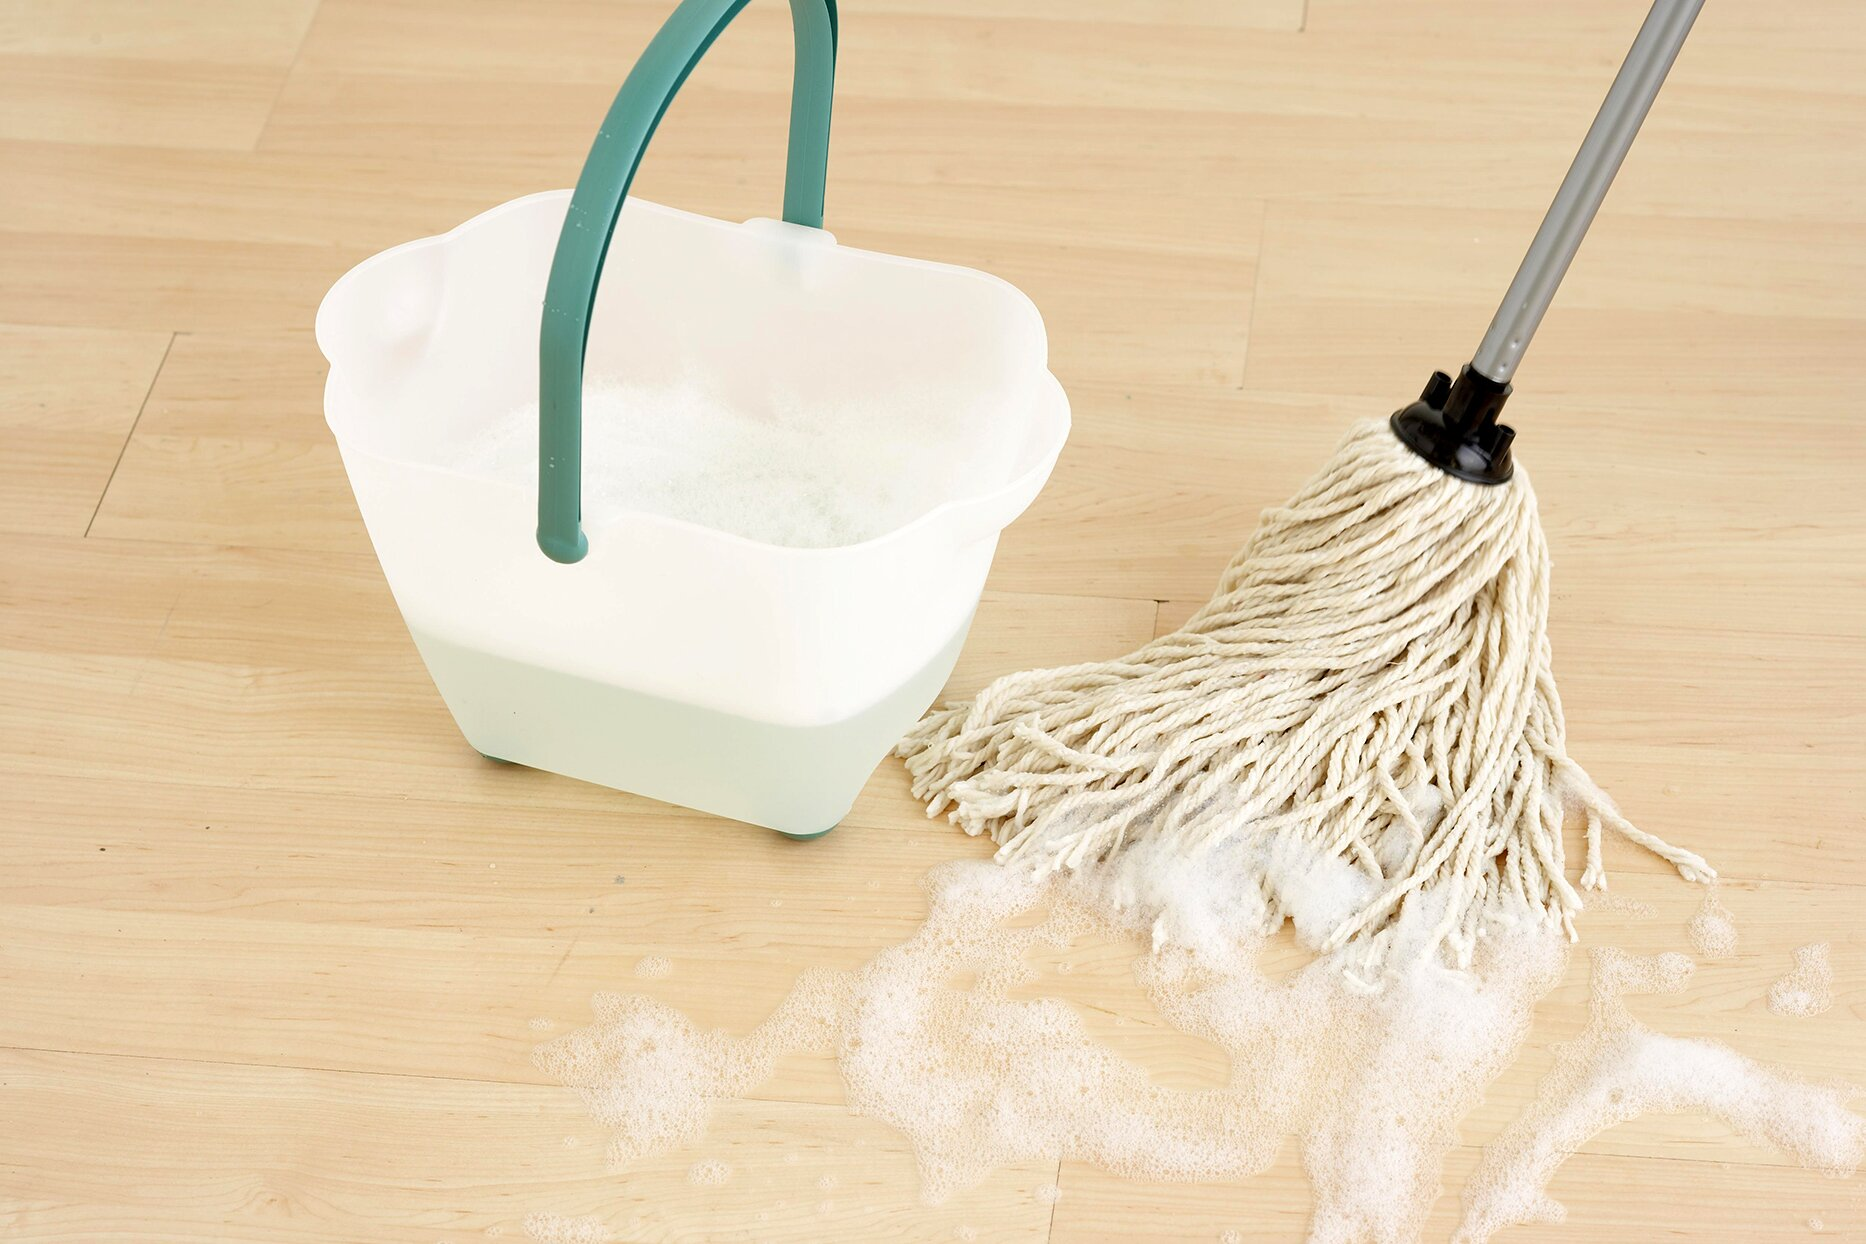 Mopping with a string mop and bucket of soap and water